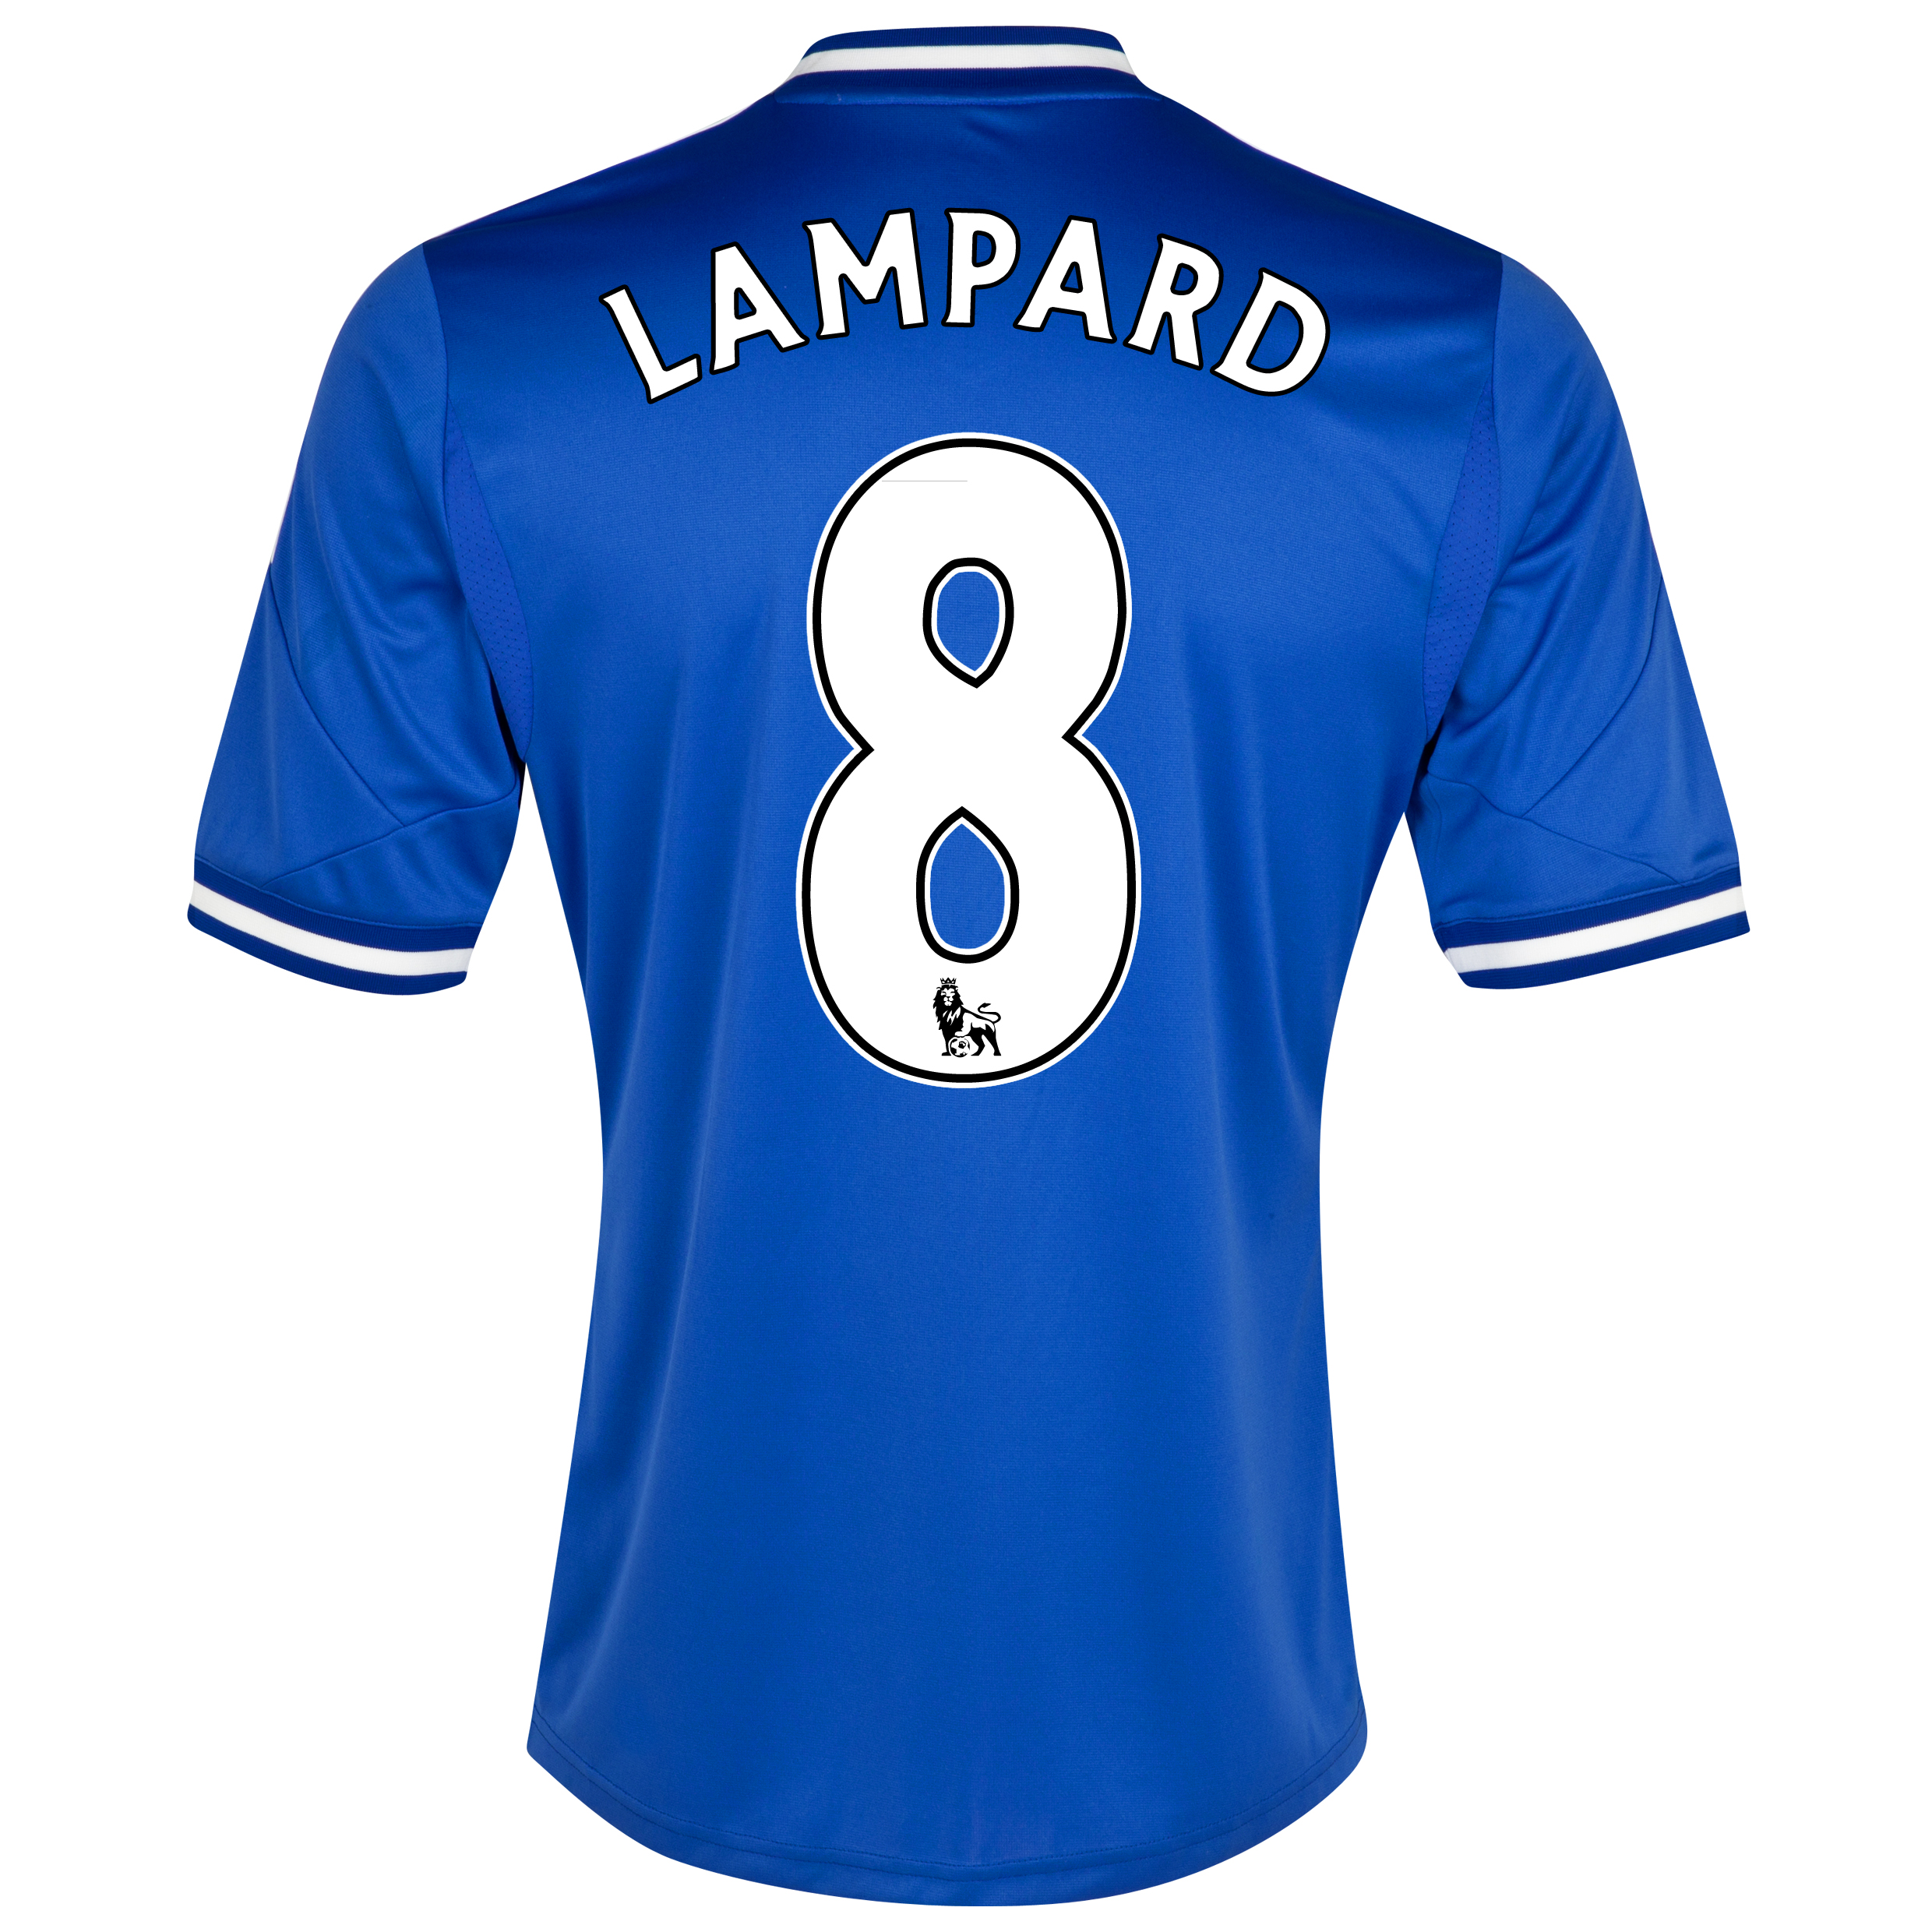 Chelsea Home Shirt 2013/14 with Lampard 8 printing